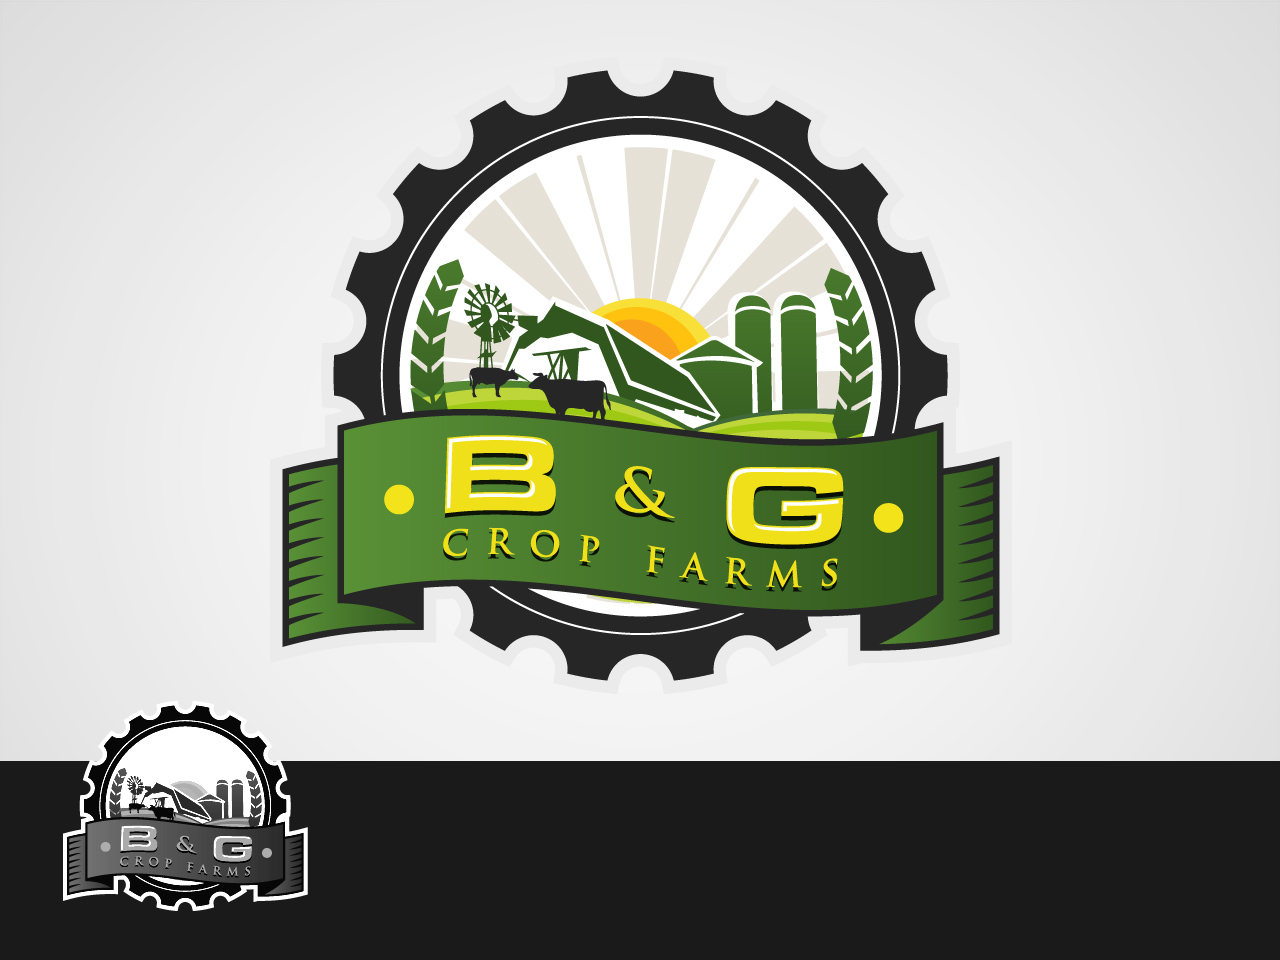 Logo Design by jpbituin - Entry No. 48 in the Logo Design Contest Artistic Logo Design for B & G Crop Farms.